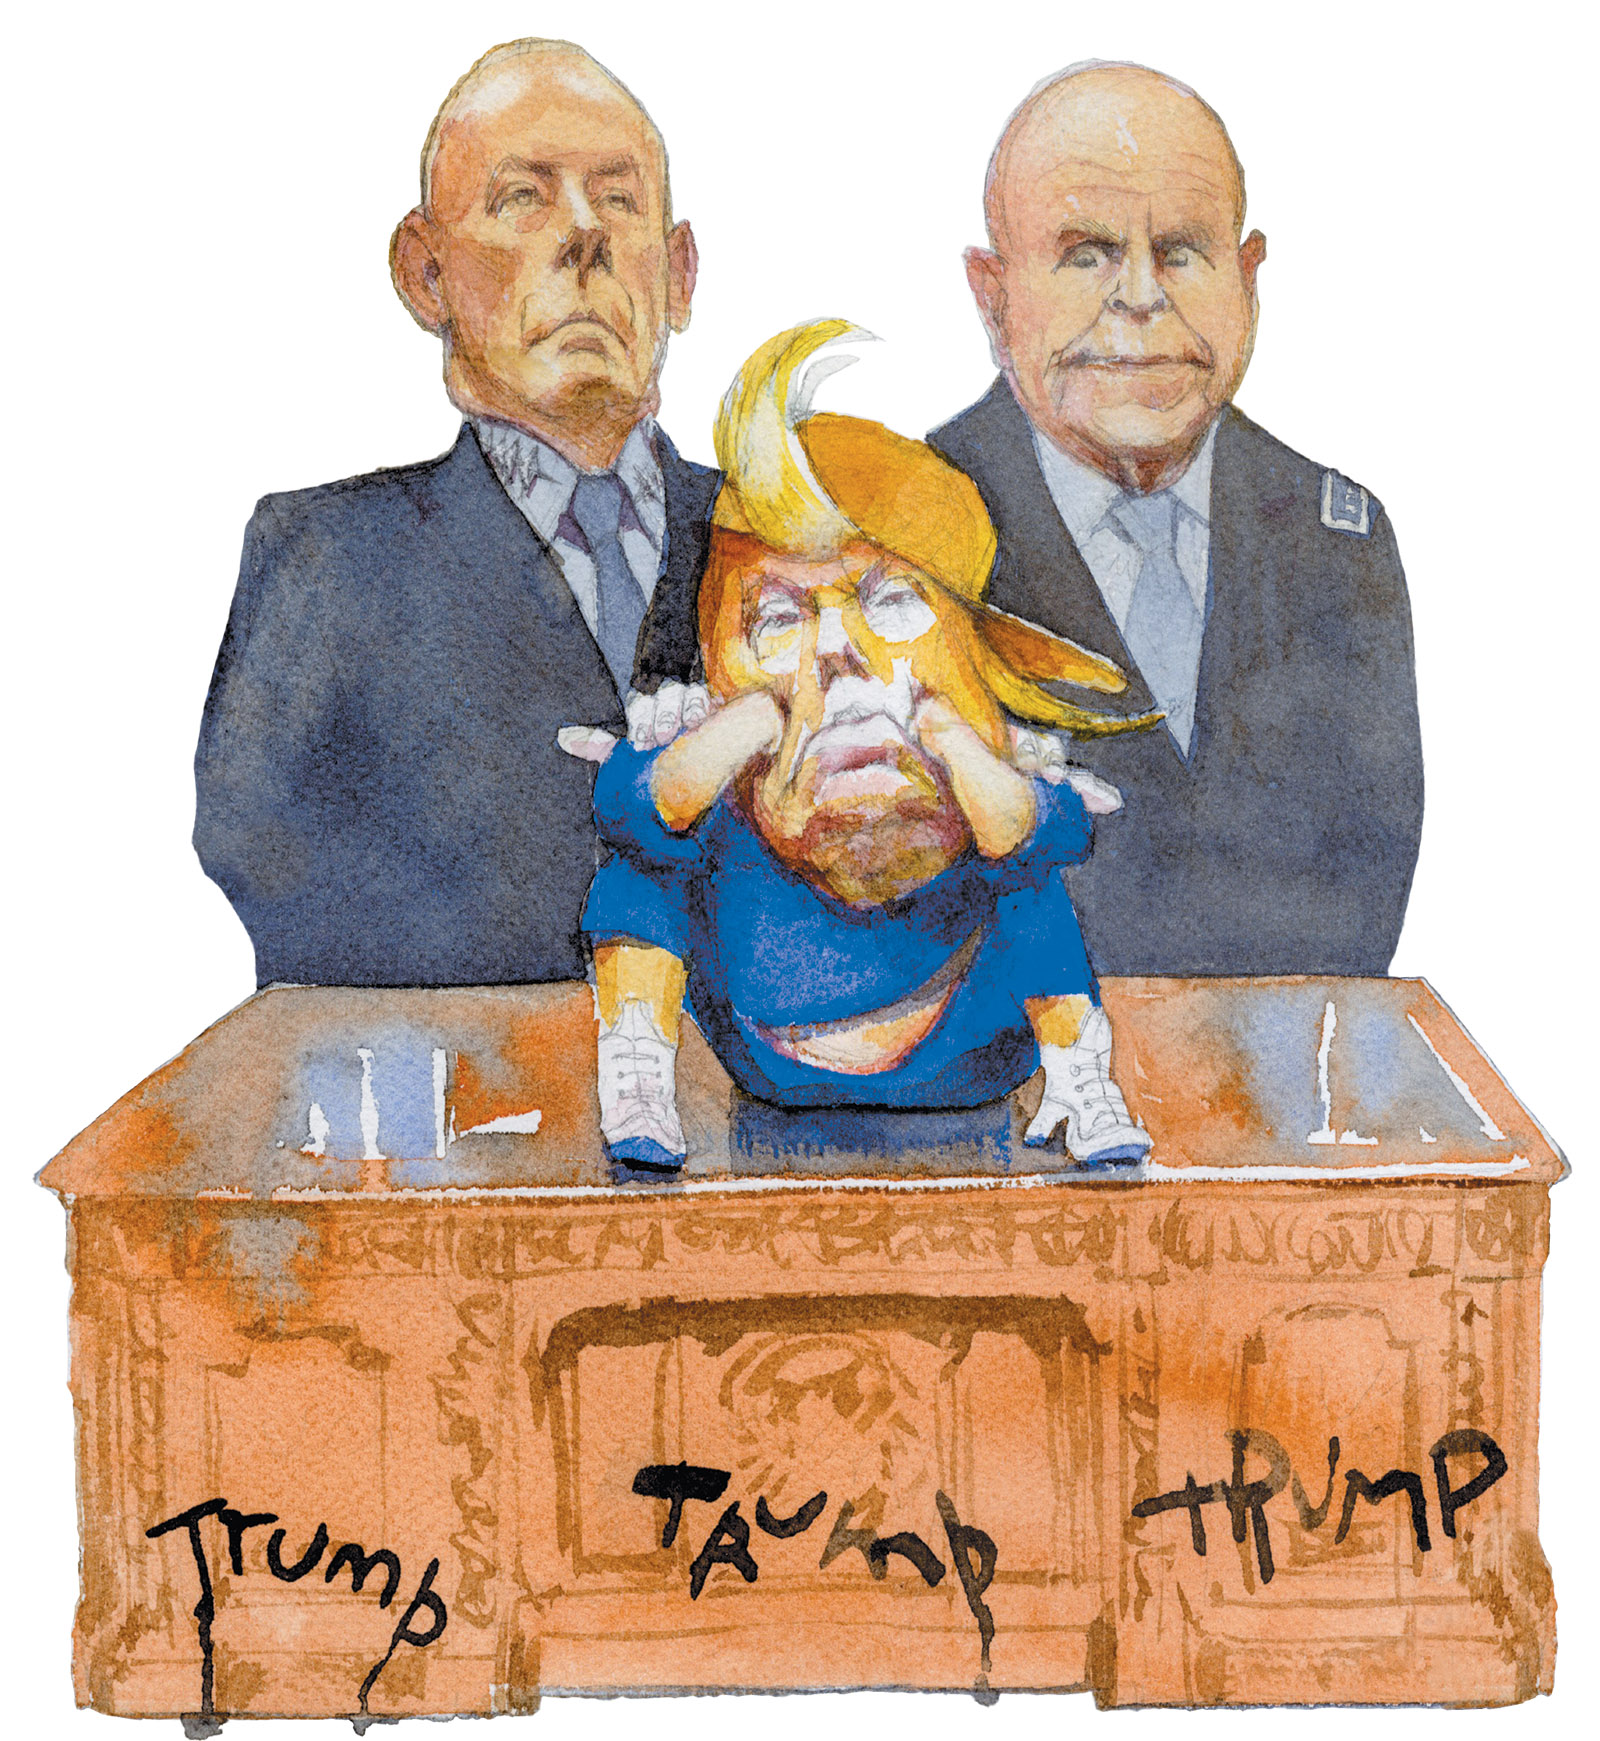 John Kelly, Donald Trump and H.R. McMaster; drawing by Siegfried Woldhek